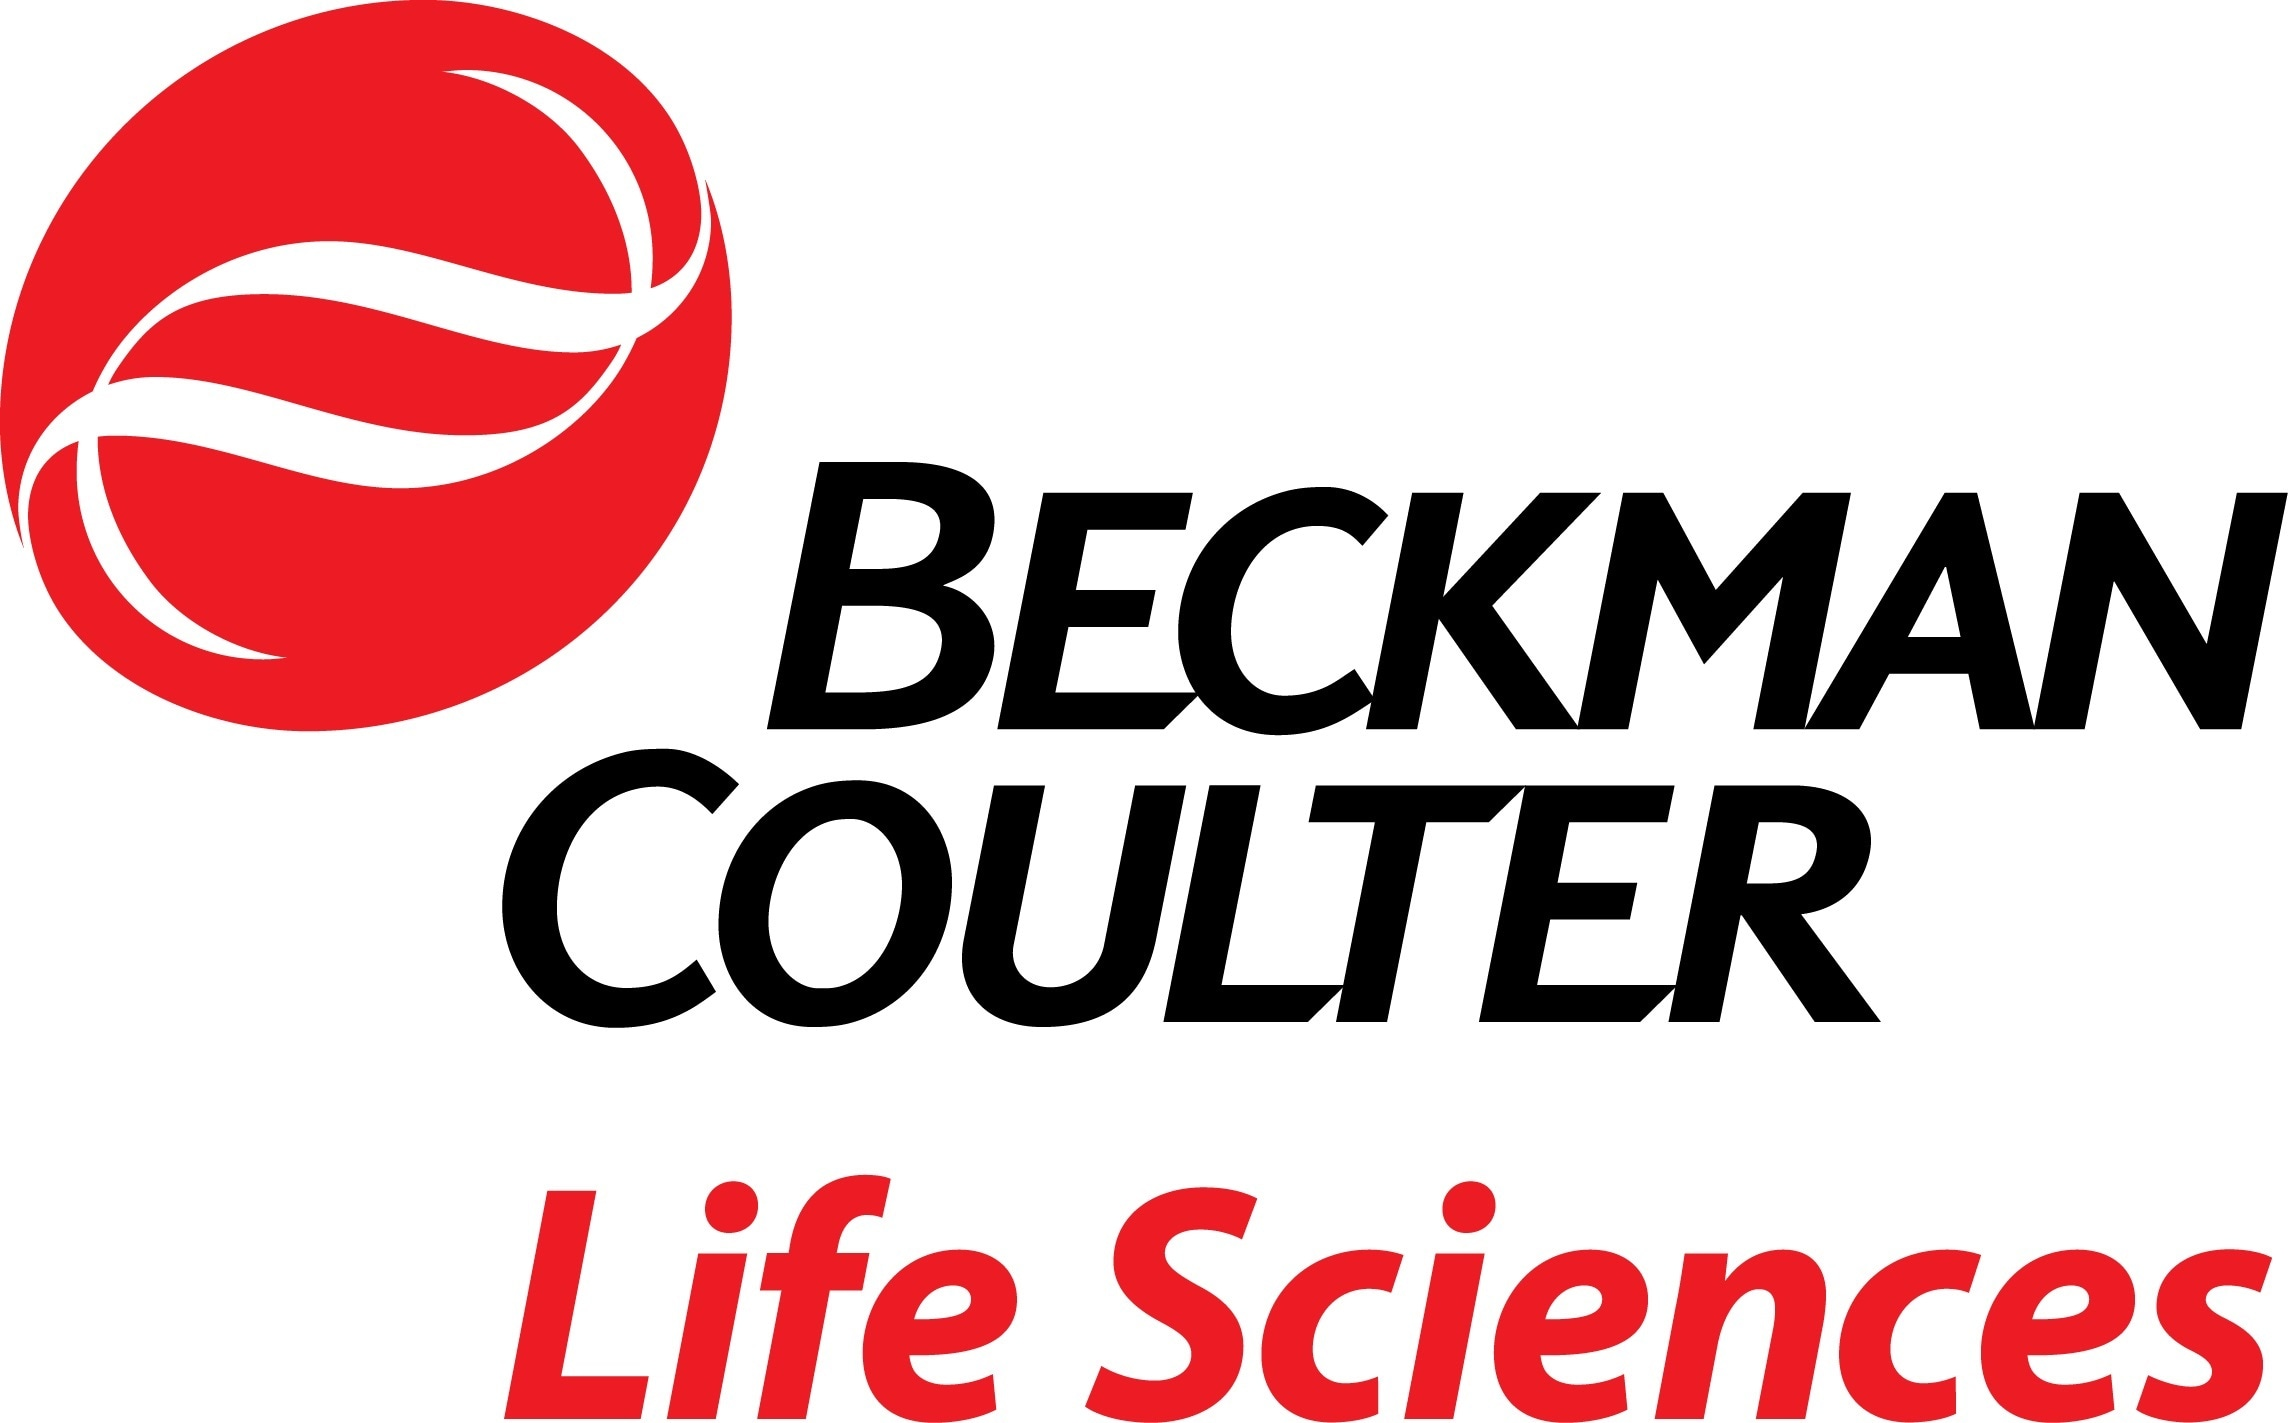 Beckman Coulter Life Sciences - Centrifugation logo.